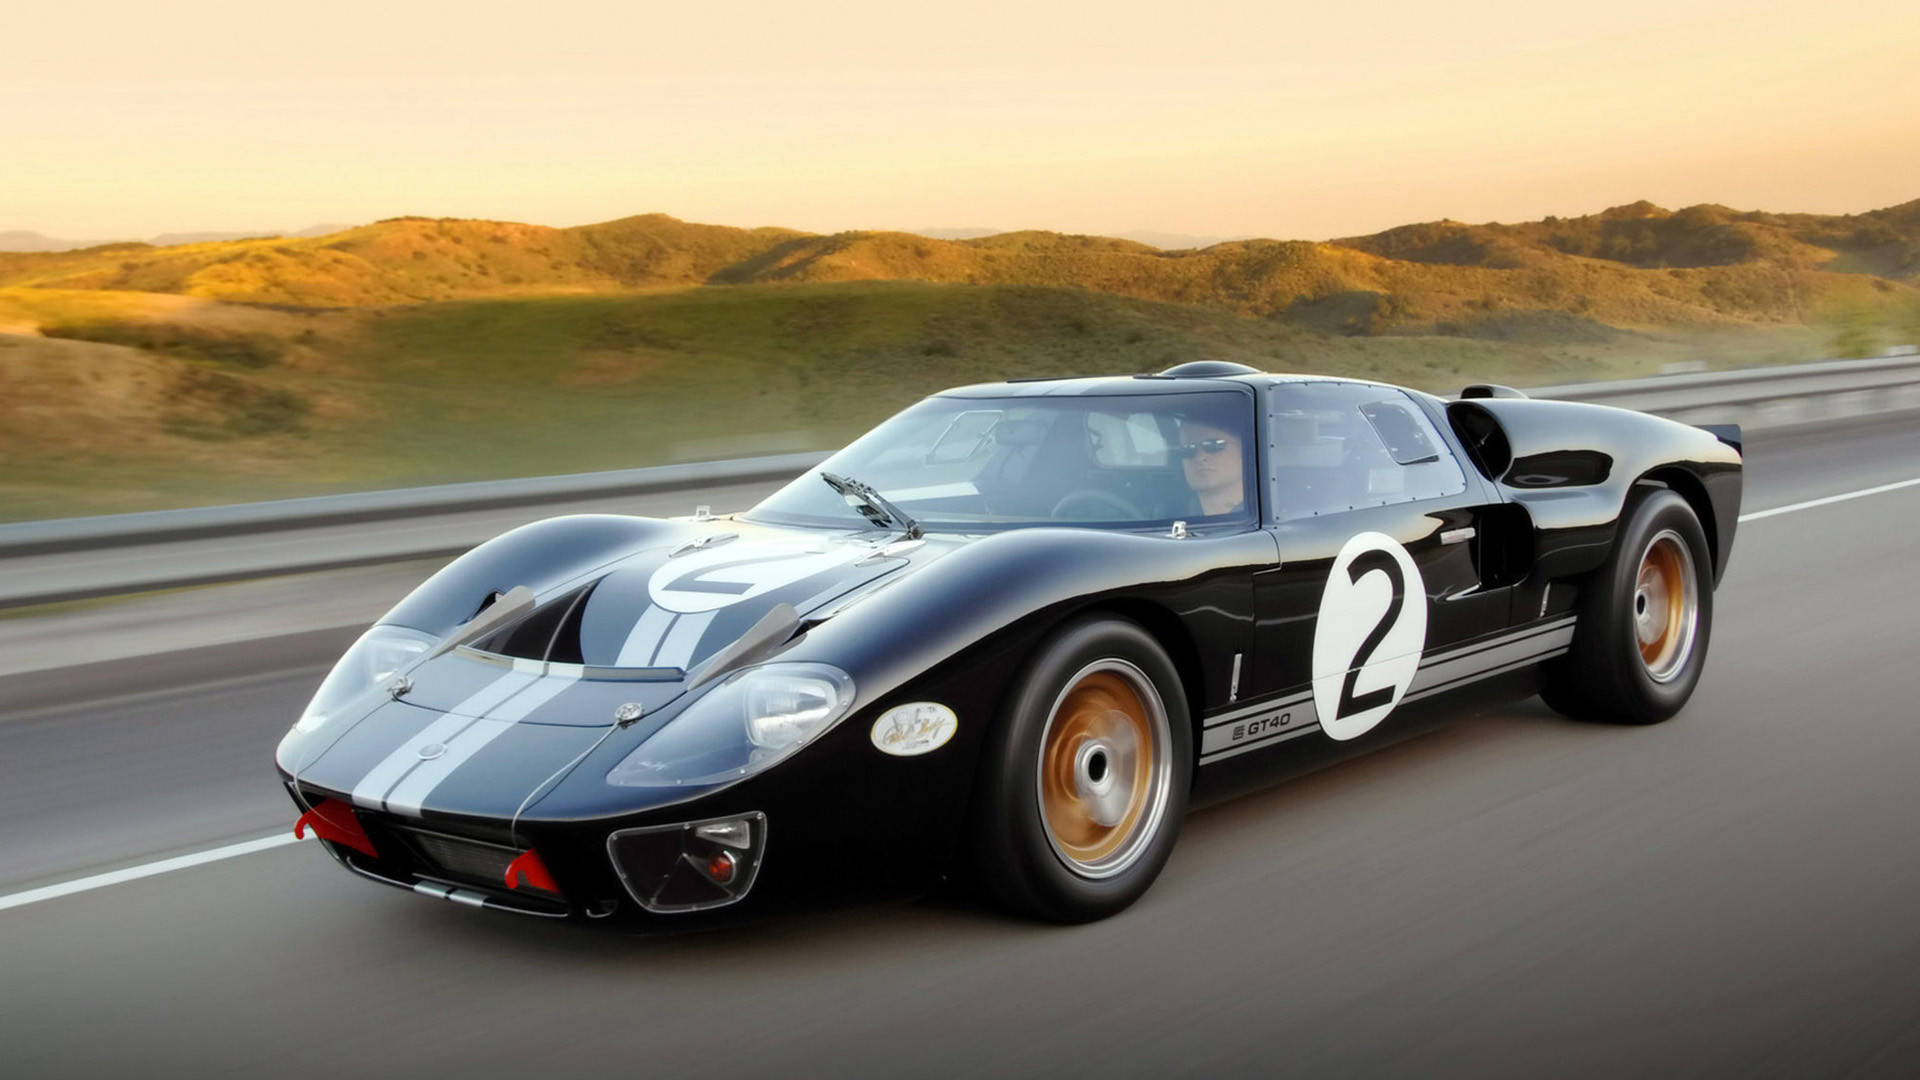 Res: 1920x1080, Ford GT40 Wallpaper 21 - 1920 X 1080